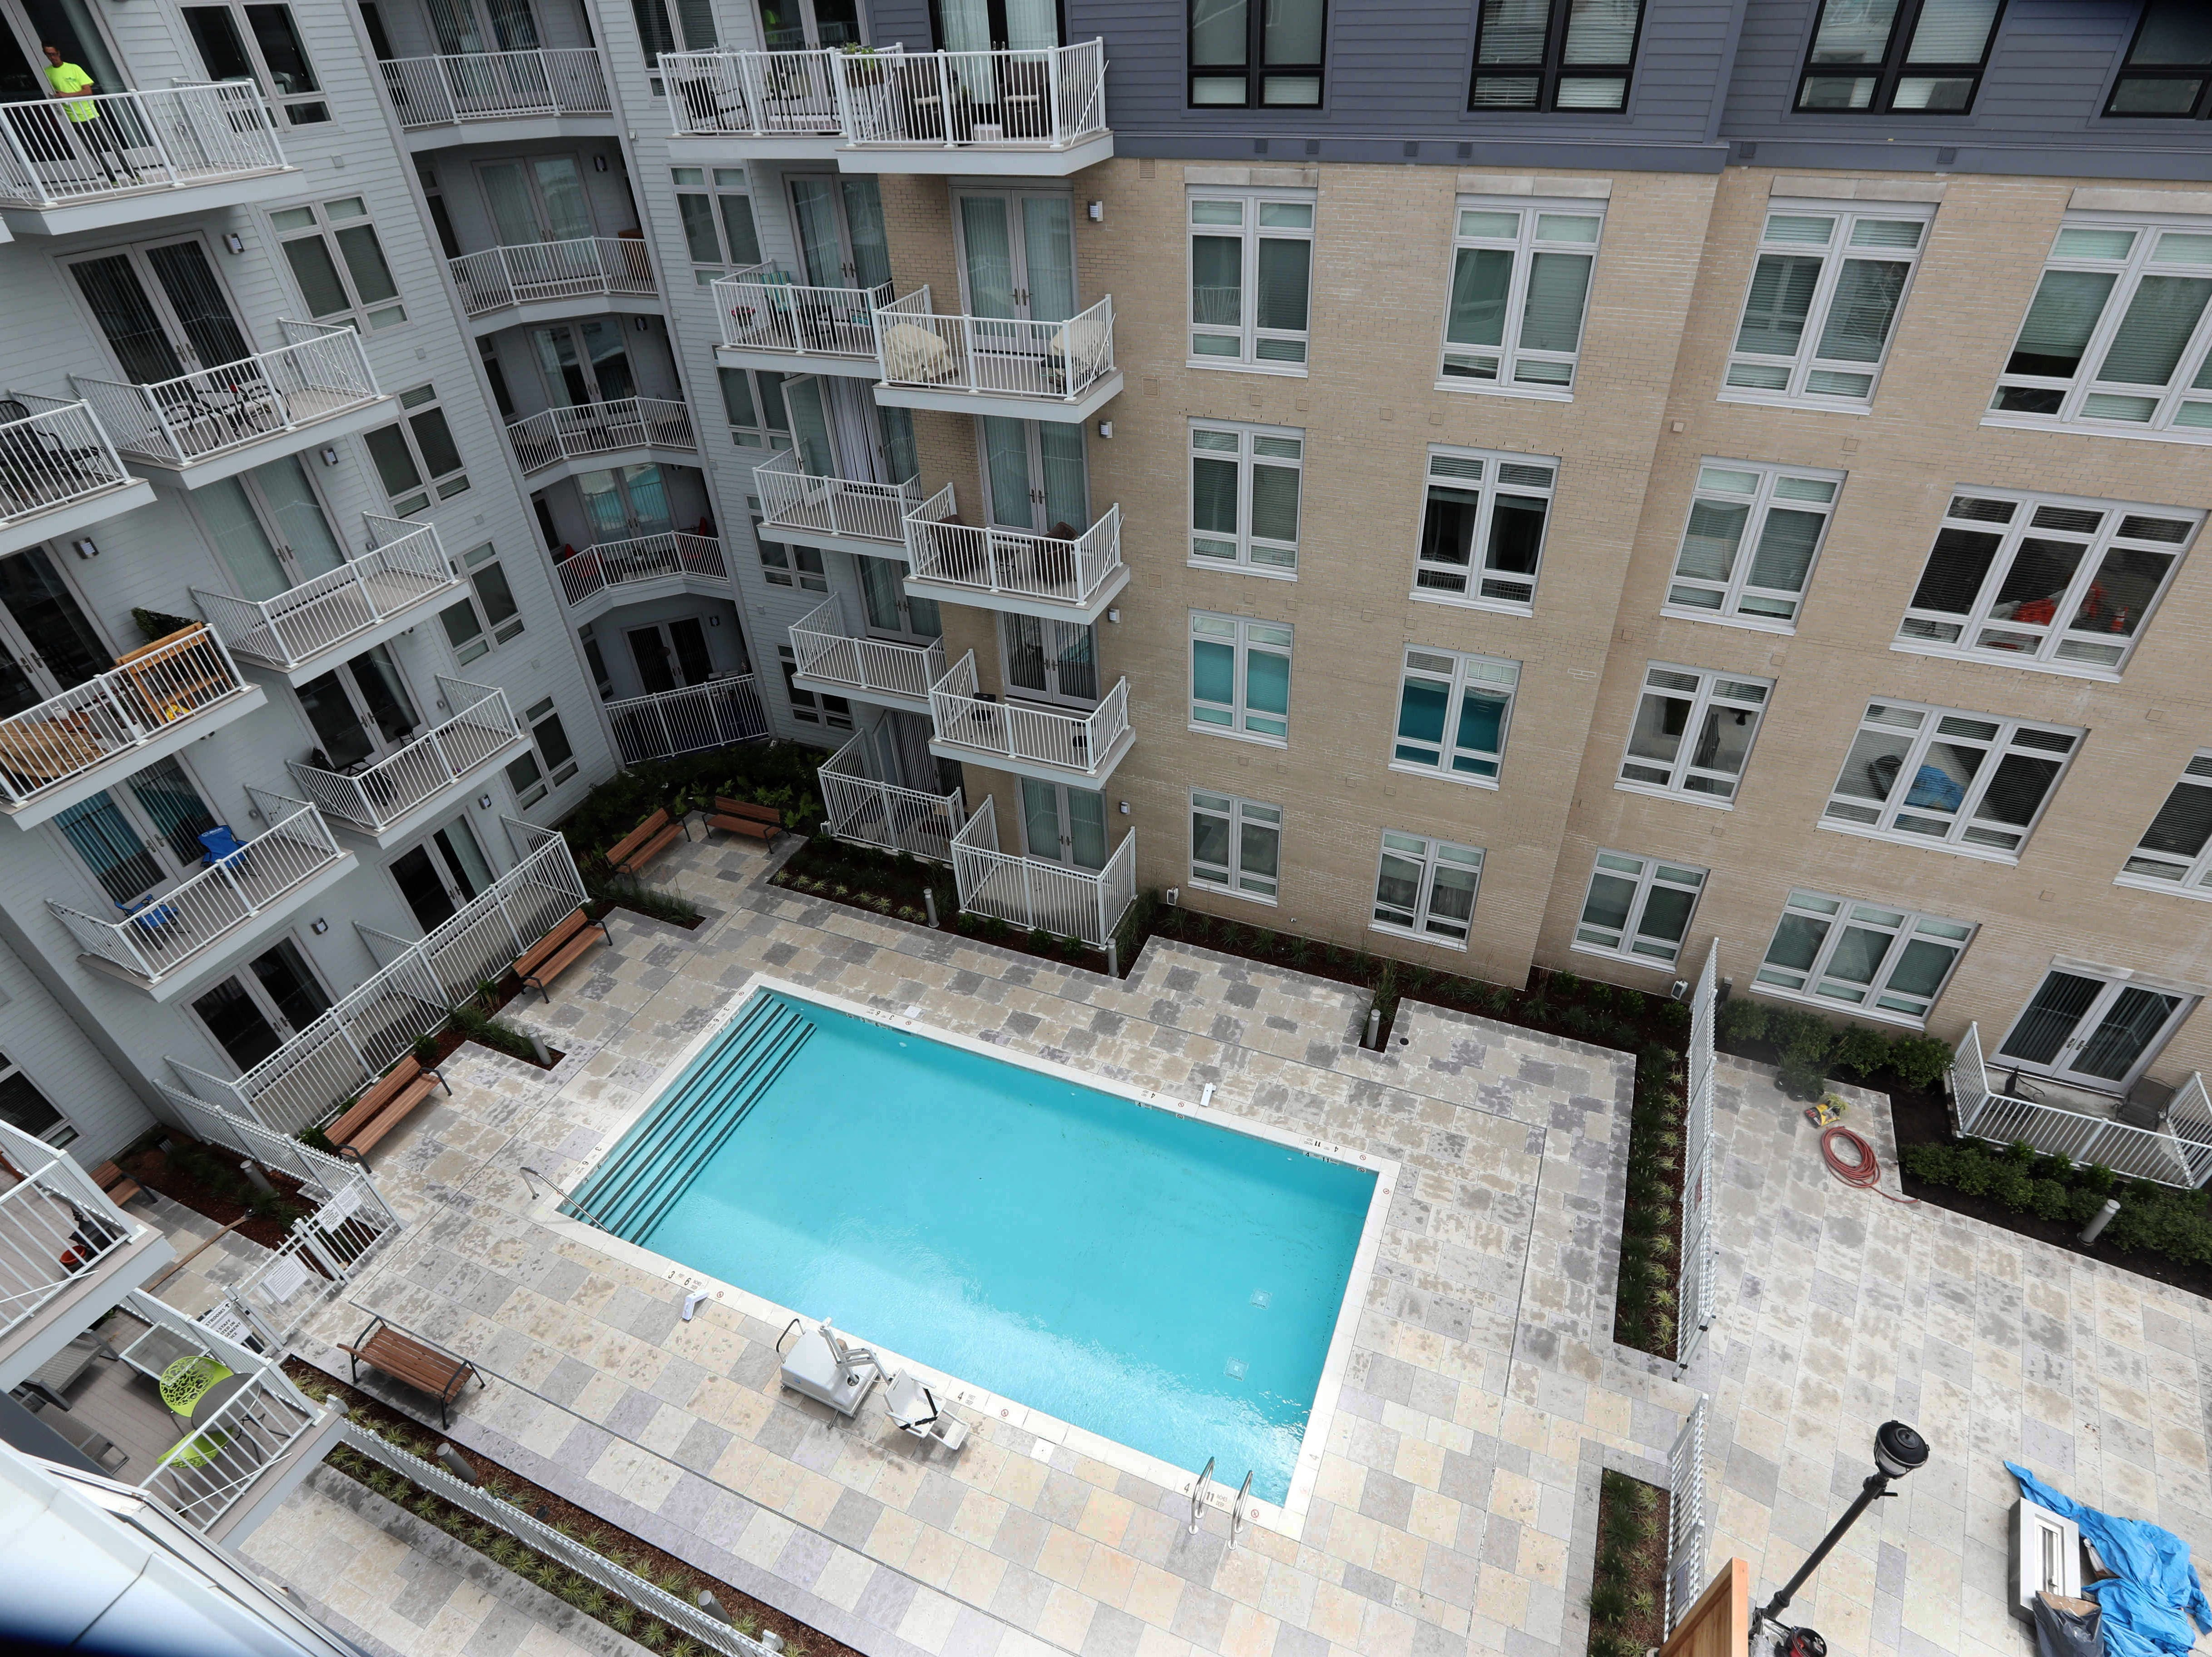 The new swimming pool at the Modera, a new luxury apartment building on the Yonkers riverfront Aug. 1, 2018. The Modera, which opened in January, will have over three-hundred studio, one-bedroom, and two-bedroom apartments when all when the building is totally completed.